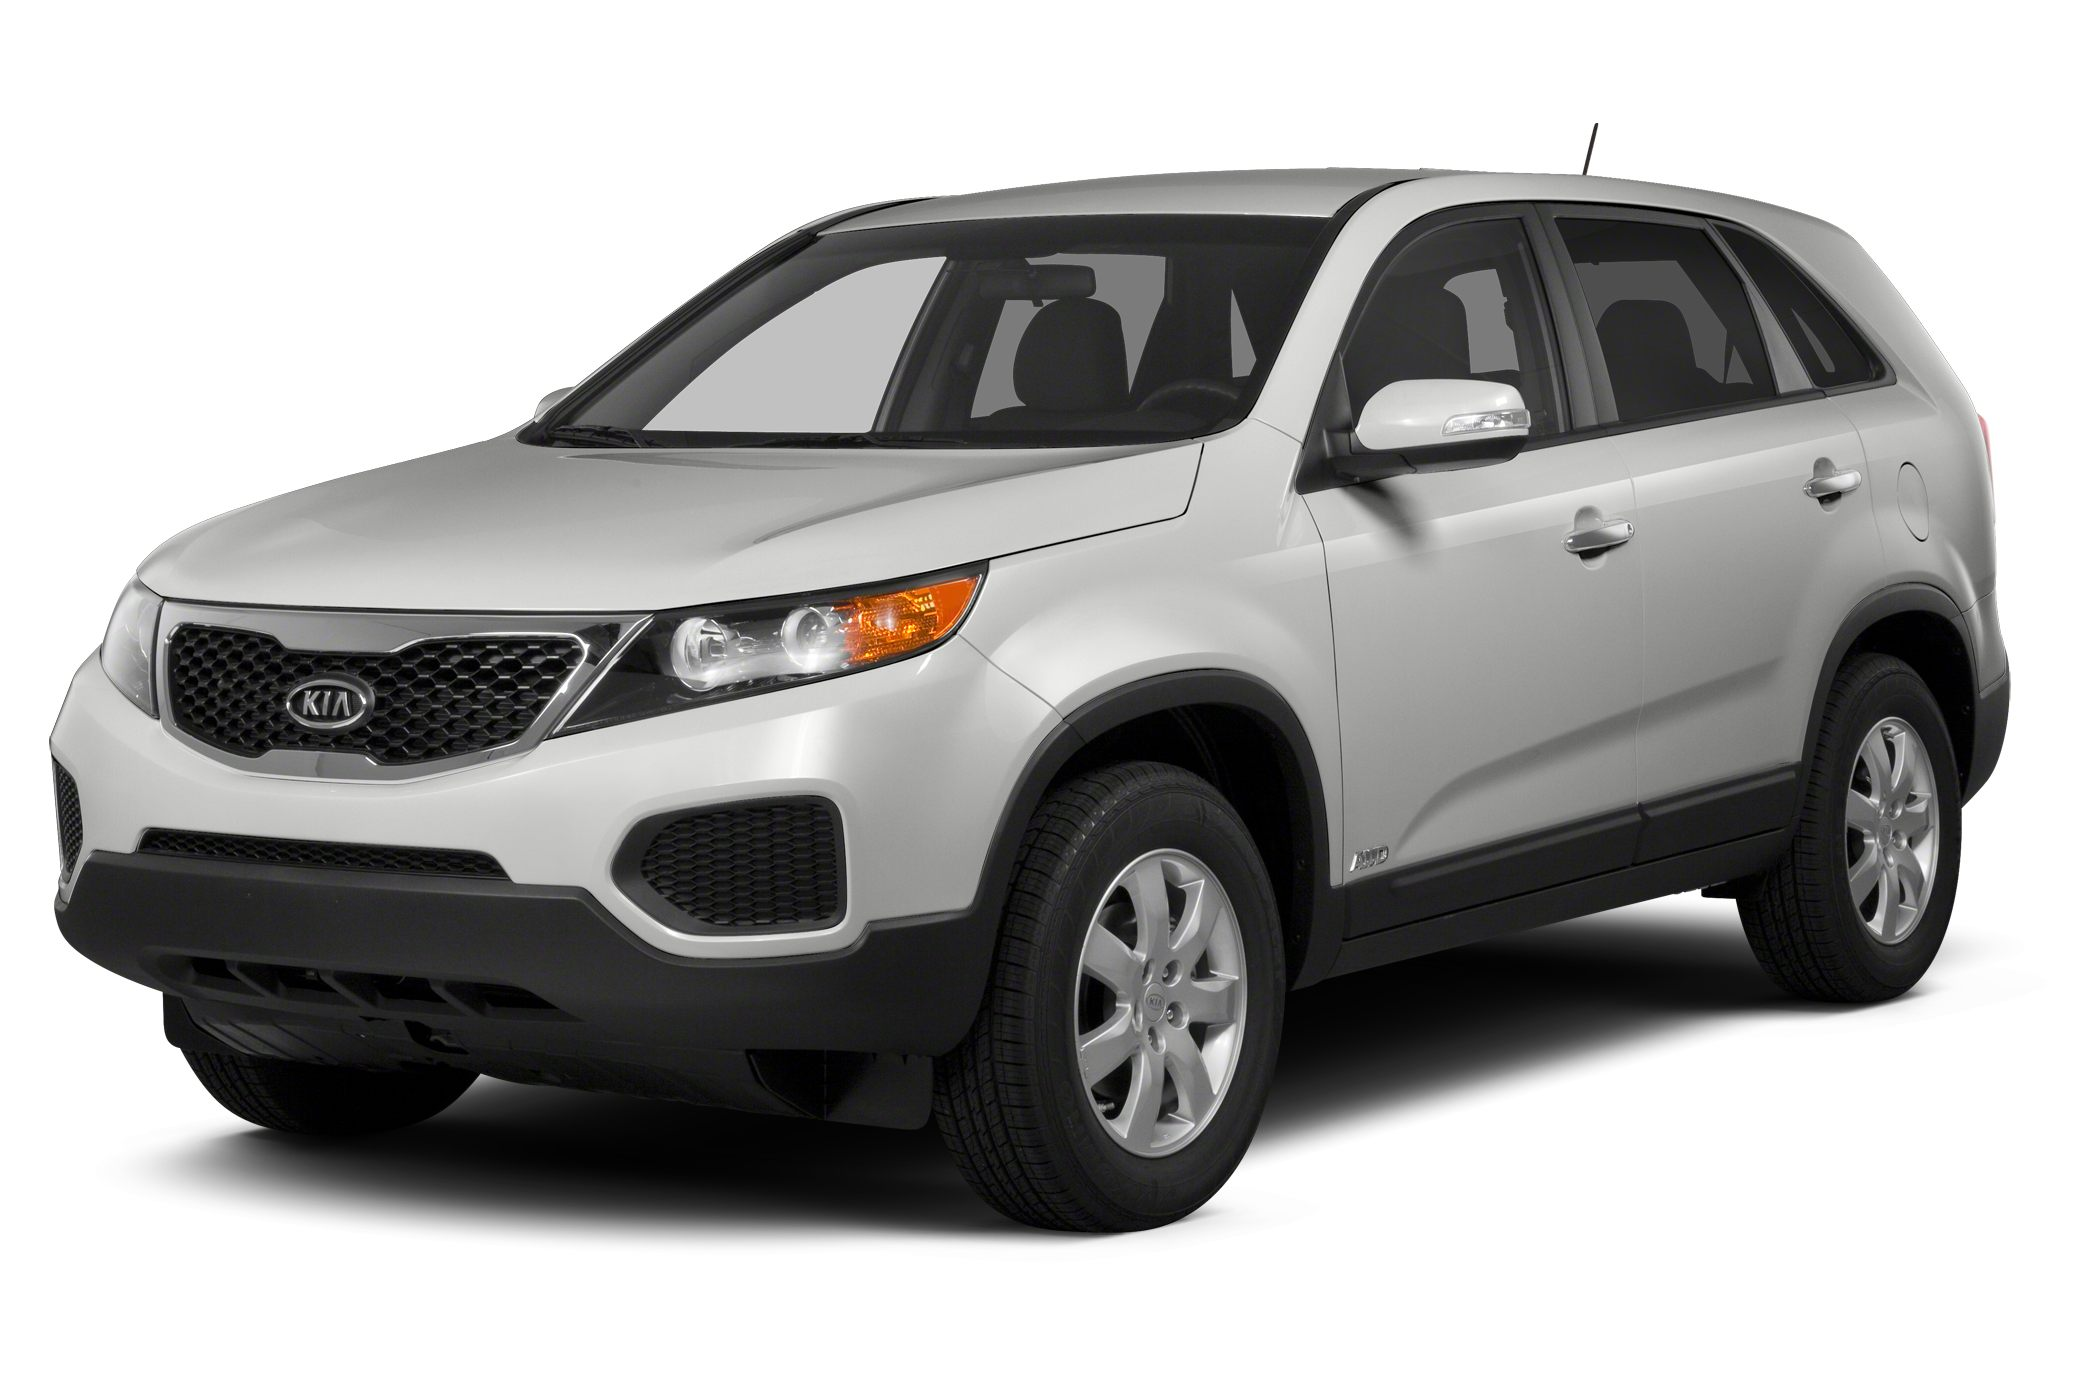 2012 Kia Sorento LX GREAT MILES 40849 FUEL EFFICIENT 30 MPG Hwy21 MPG City LX trim Bluetooth